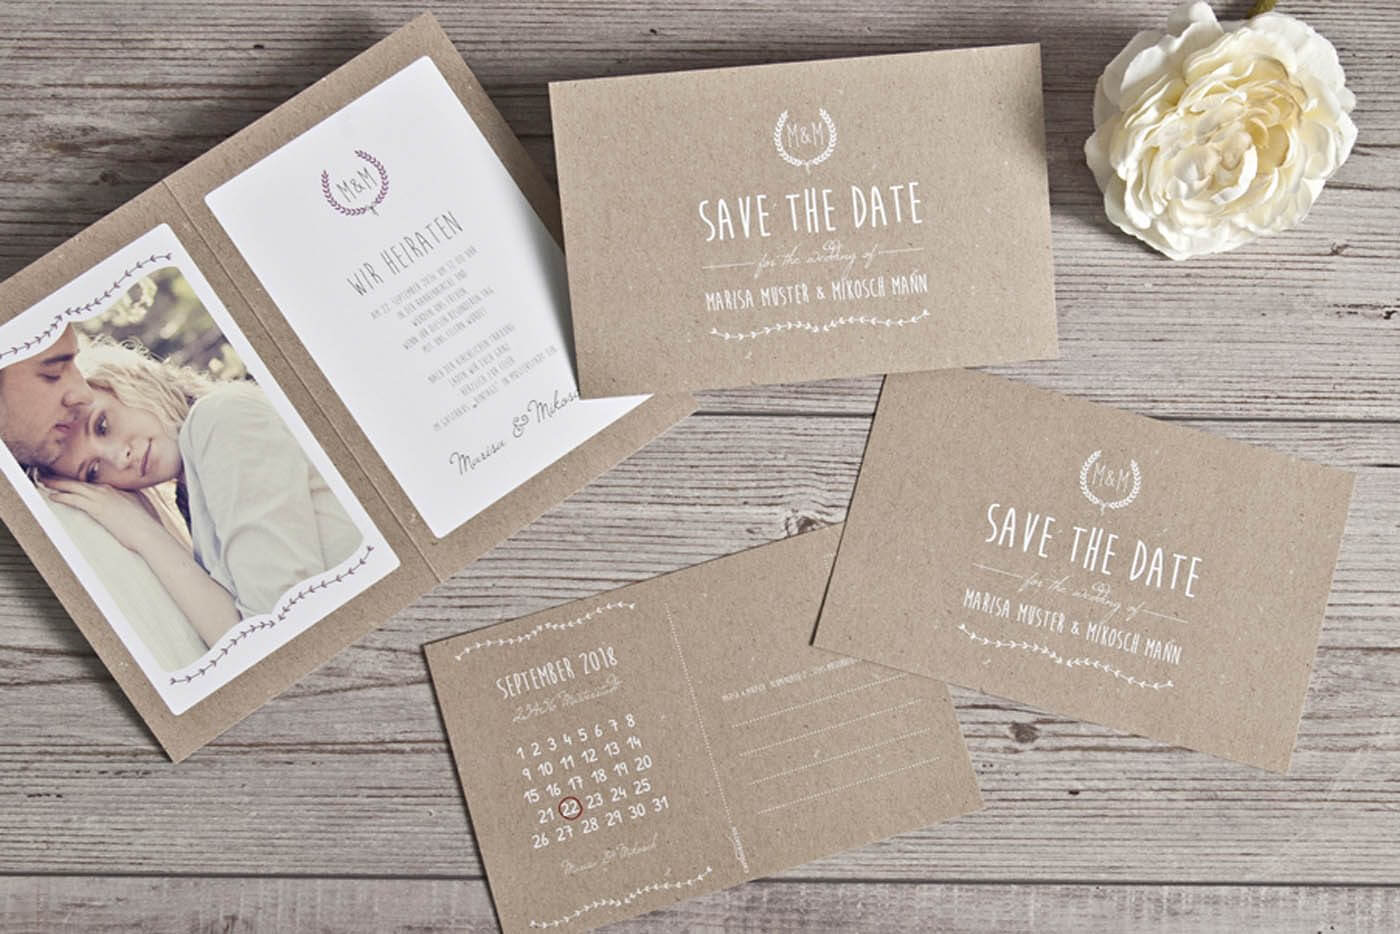 Save the Date Karten: Text